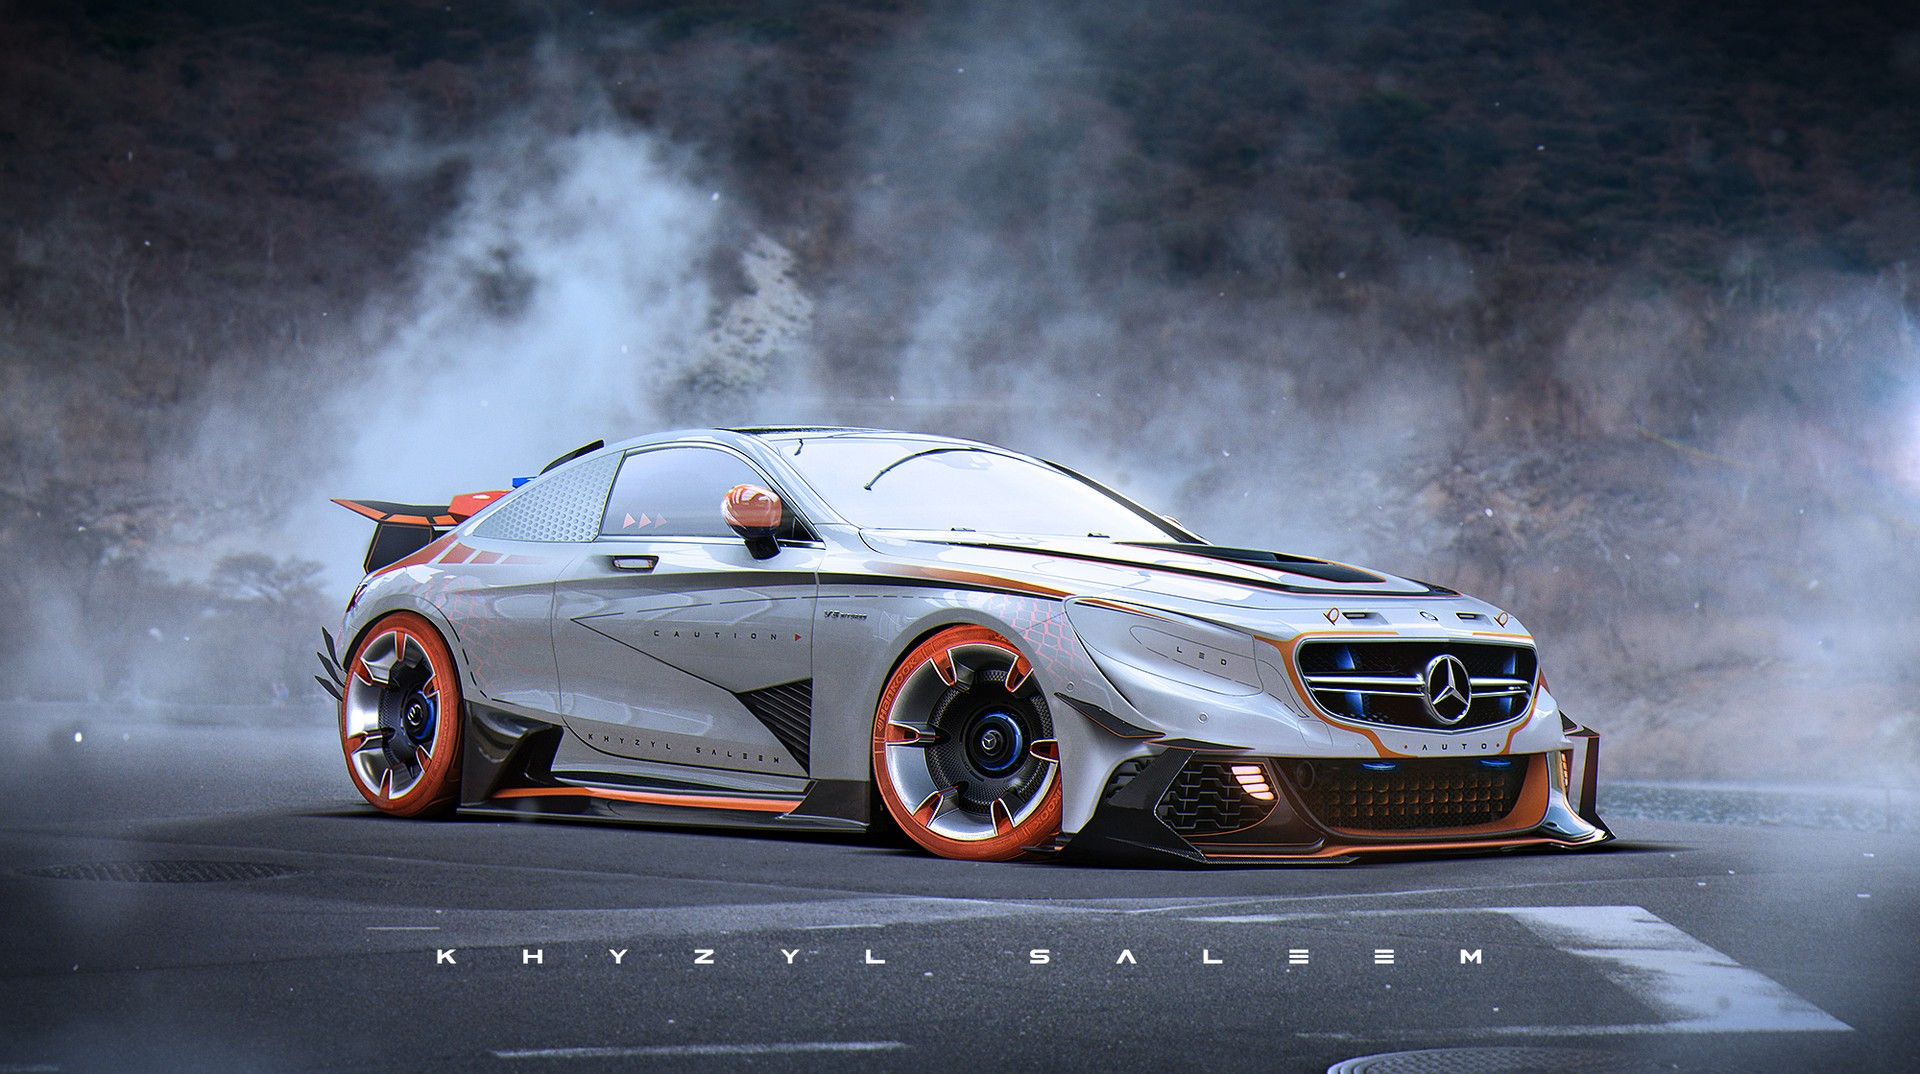 Benz Drift Car >> Khyzyl Saleem, HD Cars, 4k Wallpapers, Images, Backgrounds, Photos and Pictures